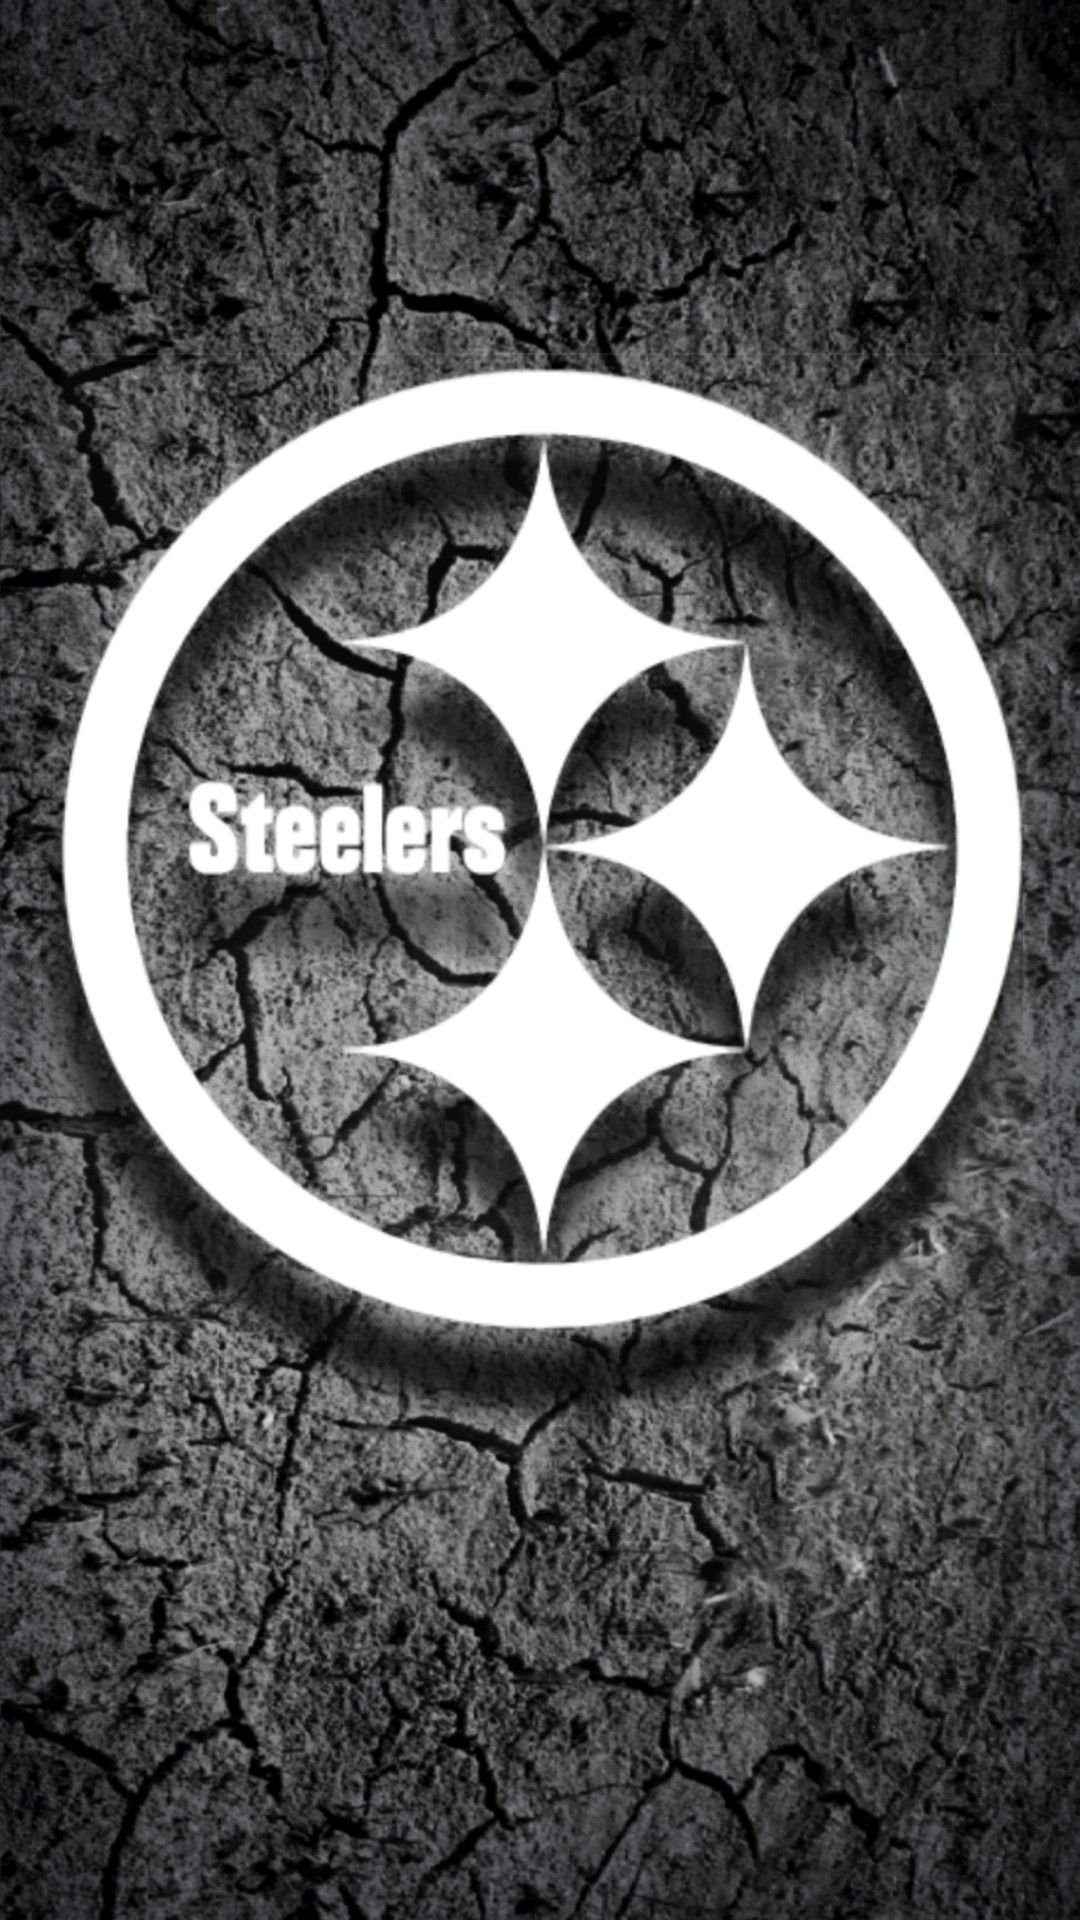 Colorful Steelers Wallpapers On Wallpaperdog